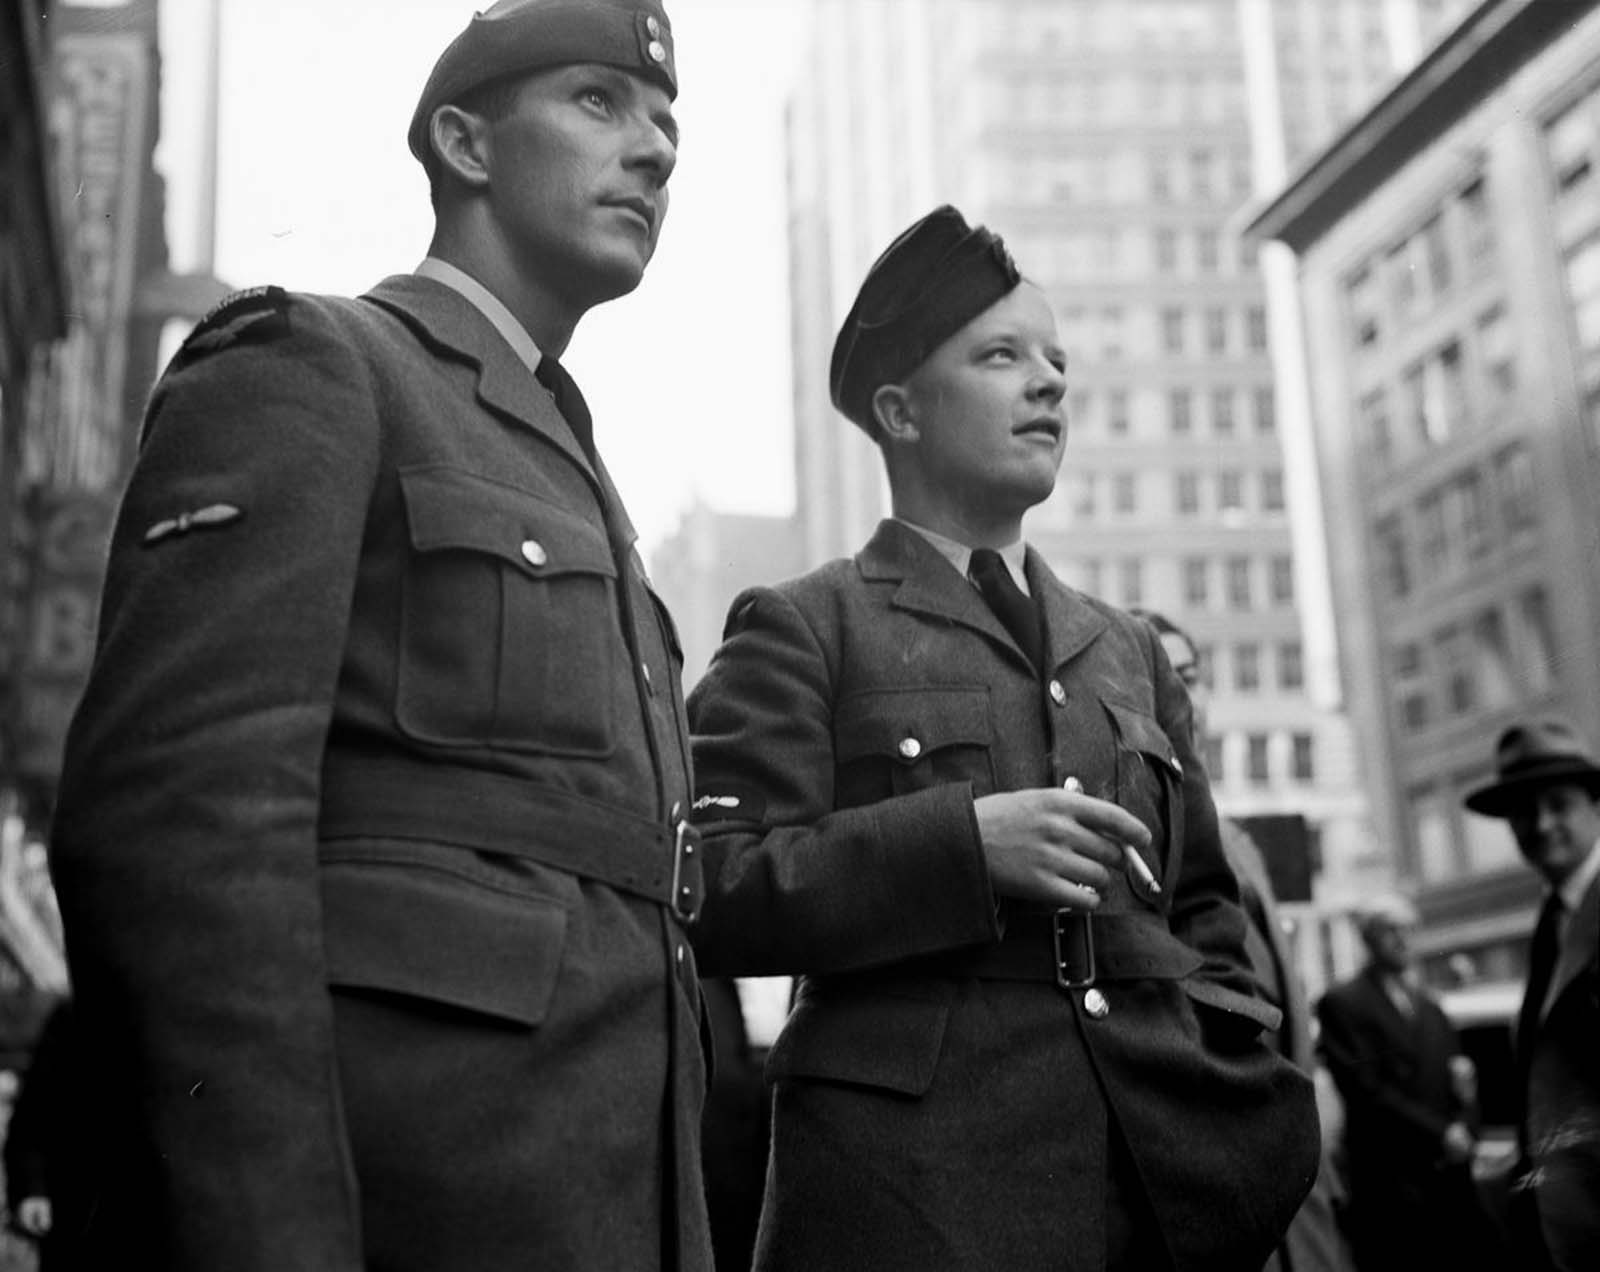 Two soldiers join the crowds as they expectantly wait for more updates.